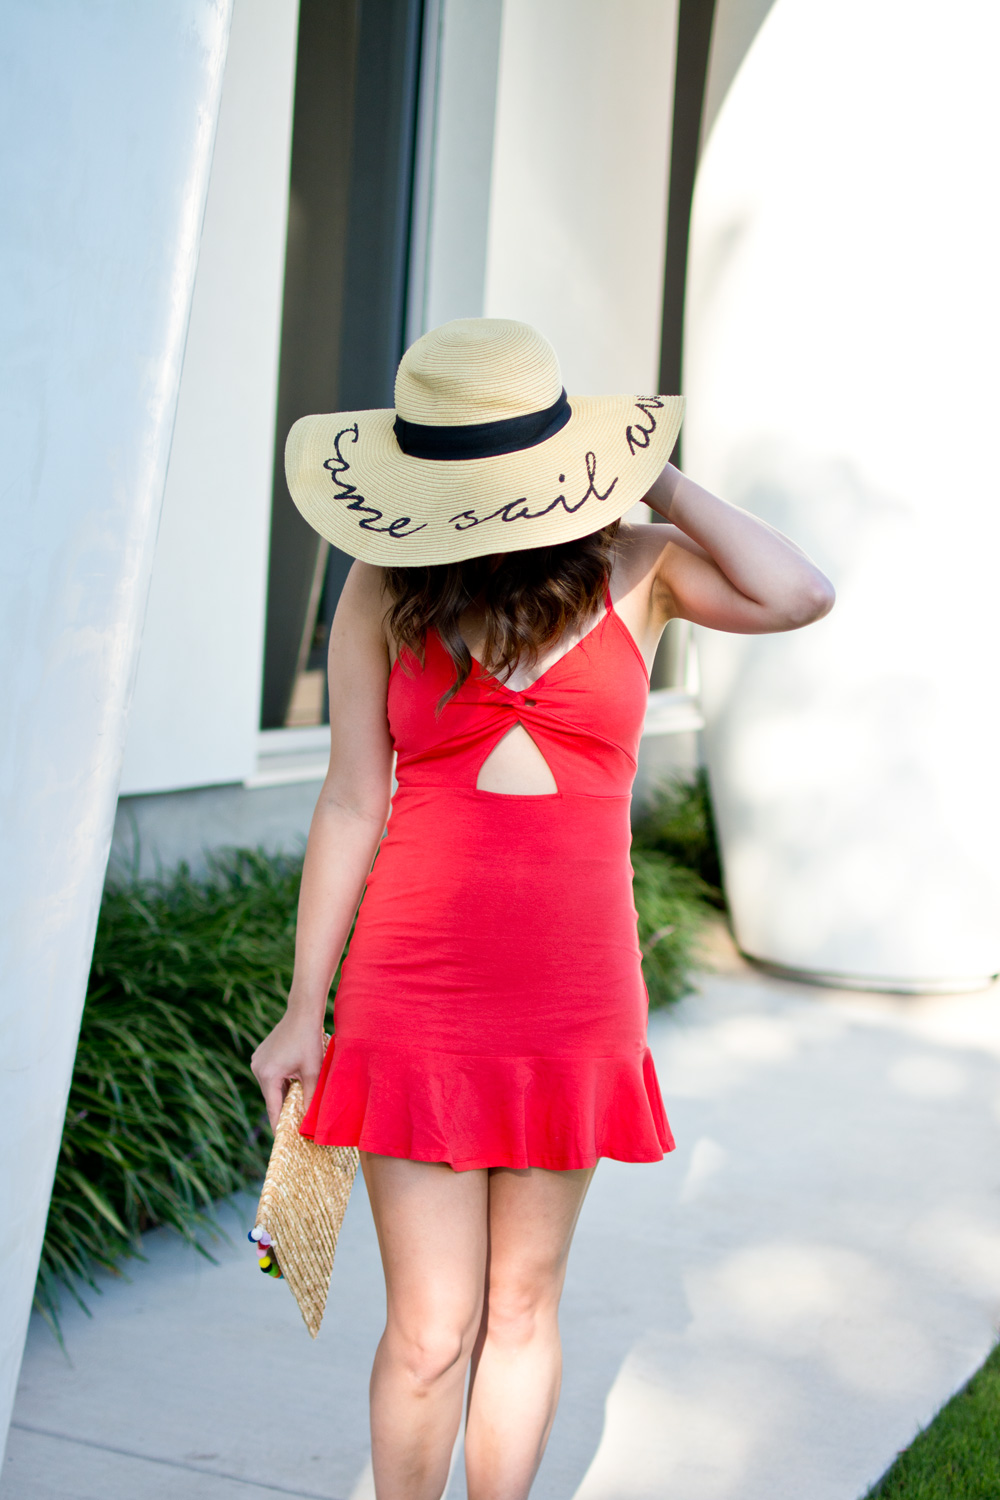 Red Asos sundress with hat and straw clutch